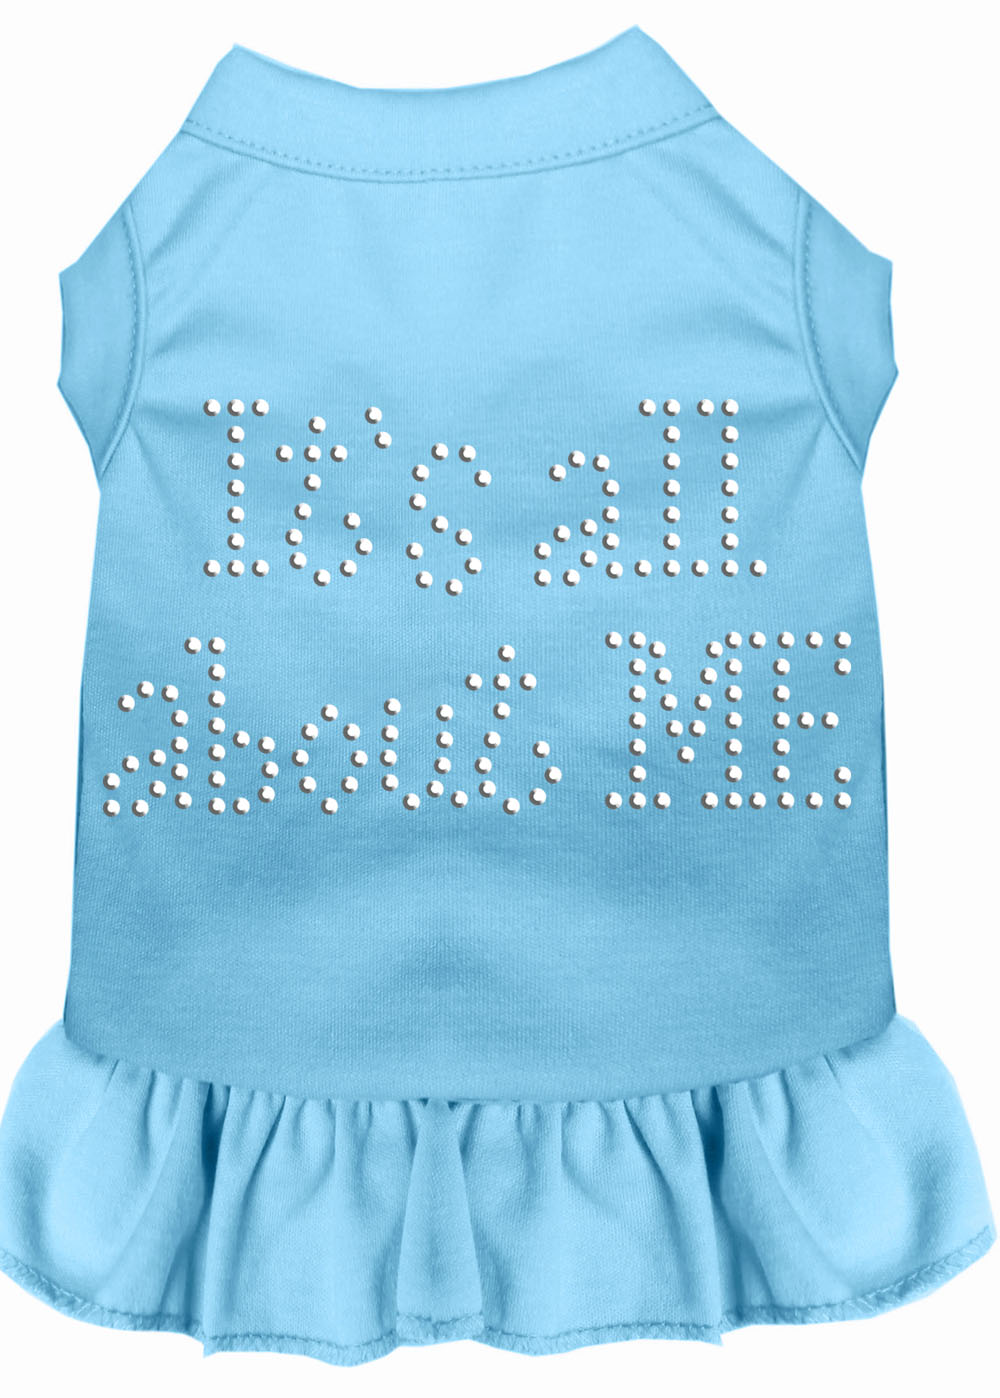 Rhinestone All About Me Dress